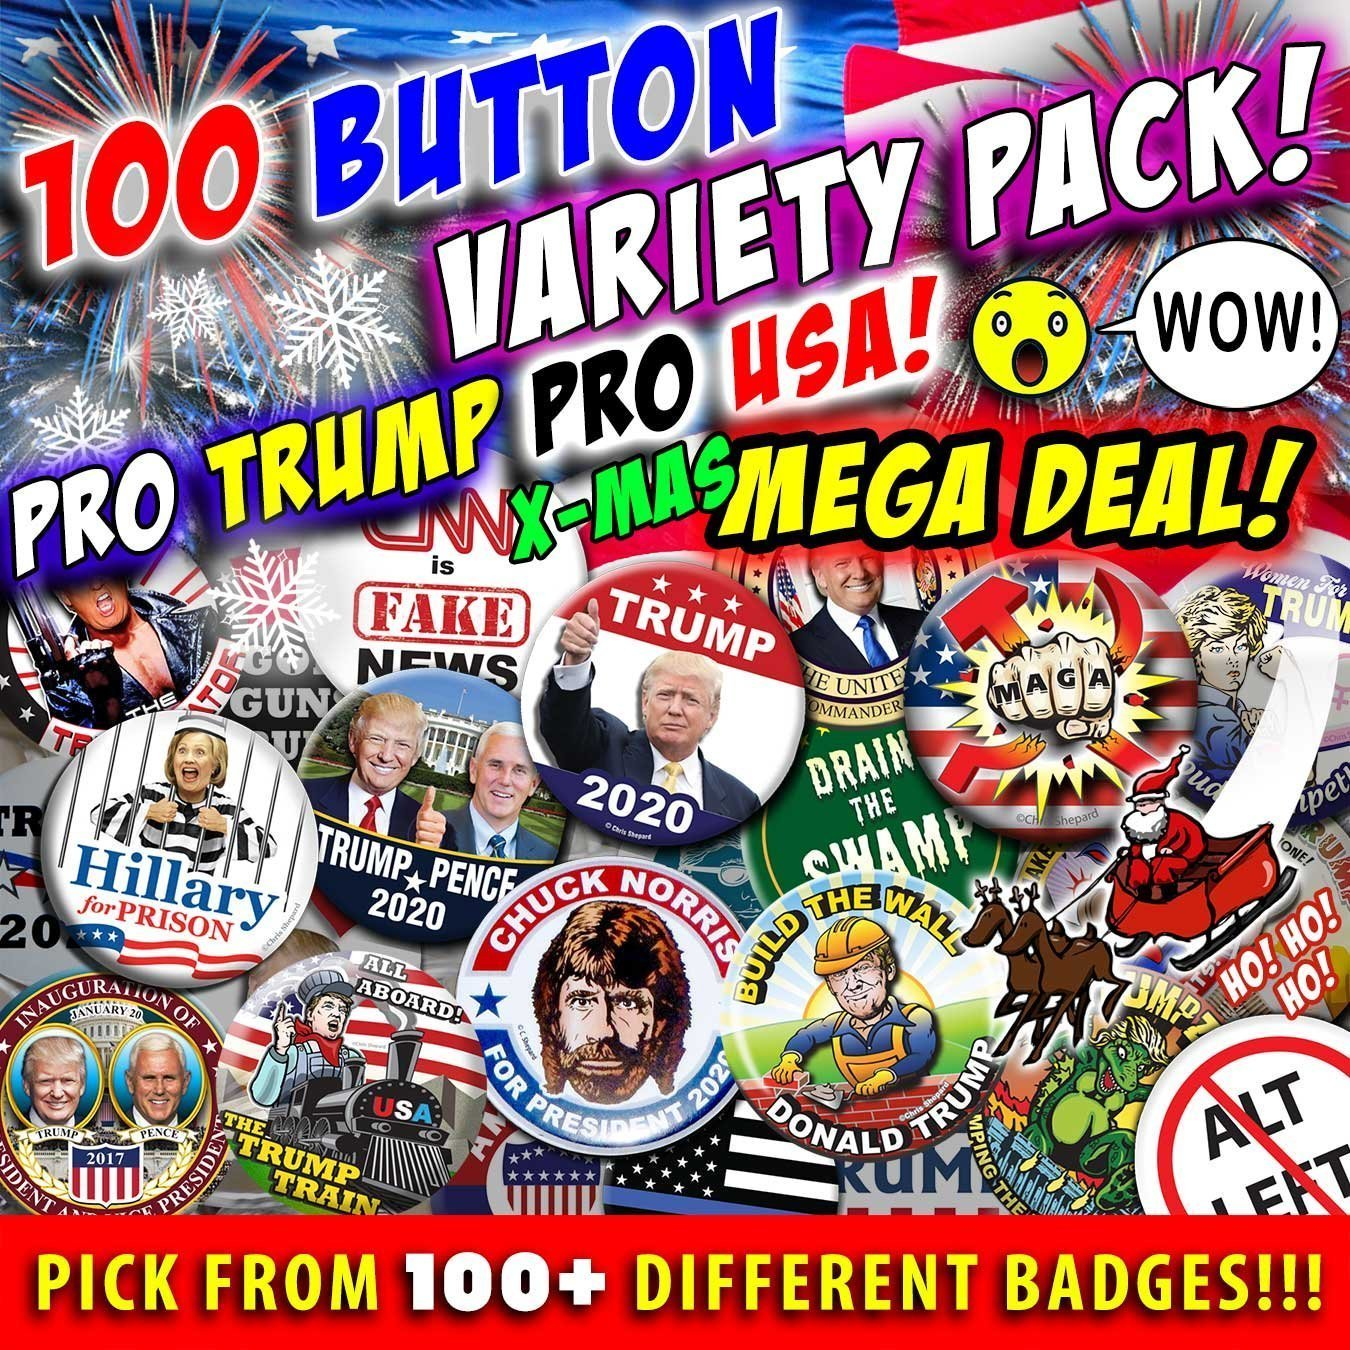 100 BUTTON SUPER MEGA VARIETY PACK! Pro Trump! Pro USA! L@@K! Choose From 123 Designs! Political Badges! Rally Pins! by Meteor Storm Buttons